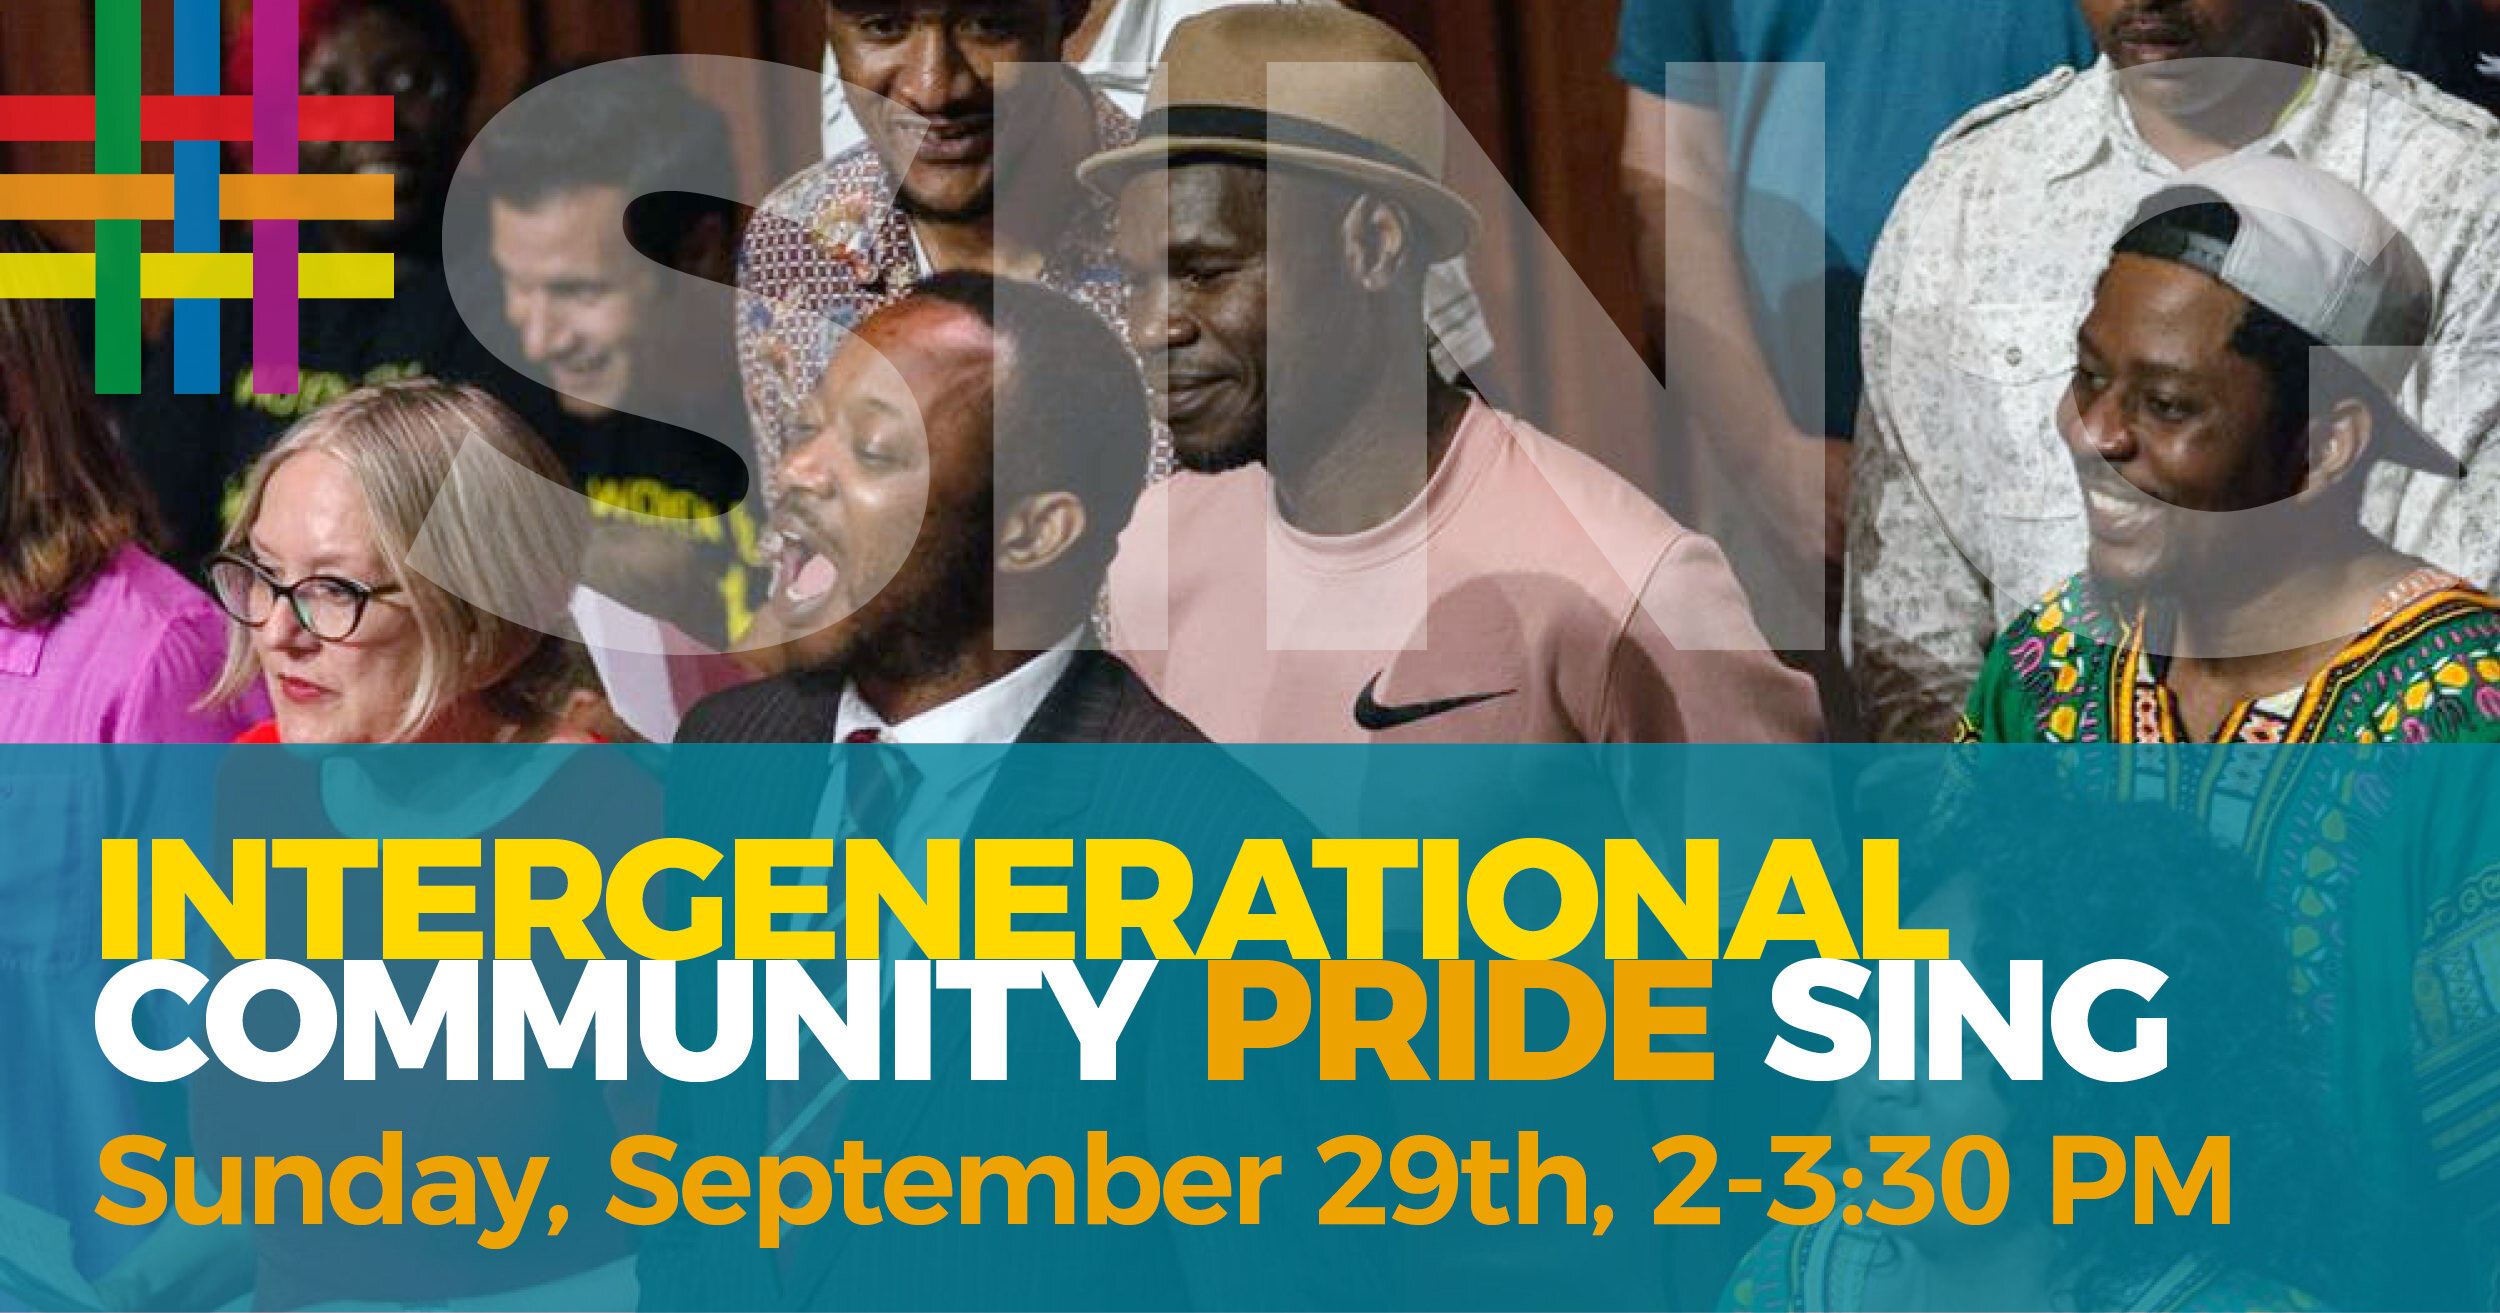 Intergenerational Community Pride Sing at Brooklyn Community Pride Center